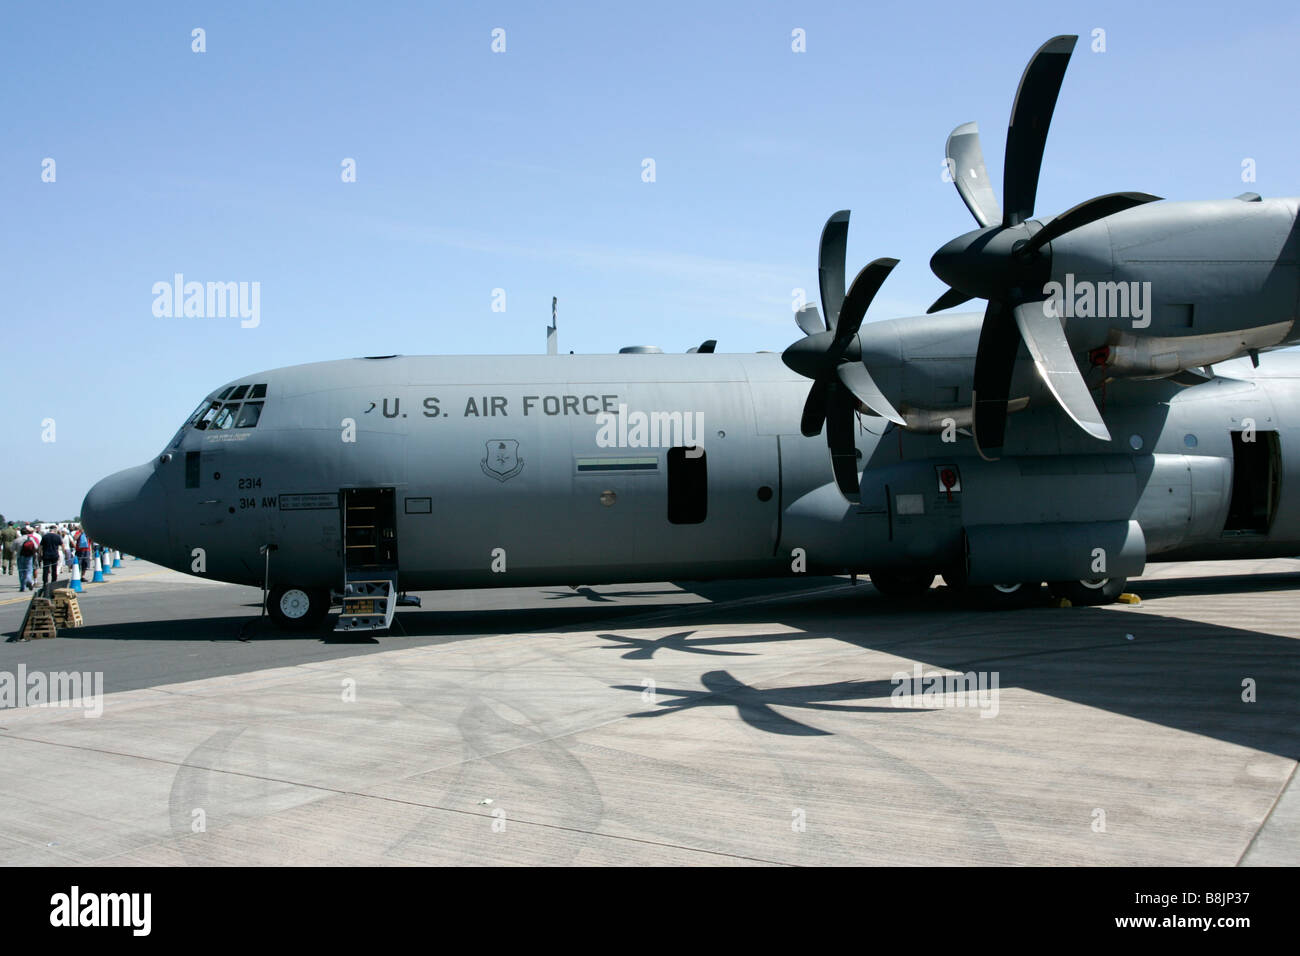 Front fuselage and engines of United States Air Force CC 130J Hercules aircraft RIAT 2005 RAF Fairford - Stock Image